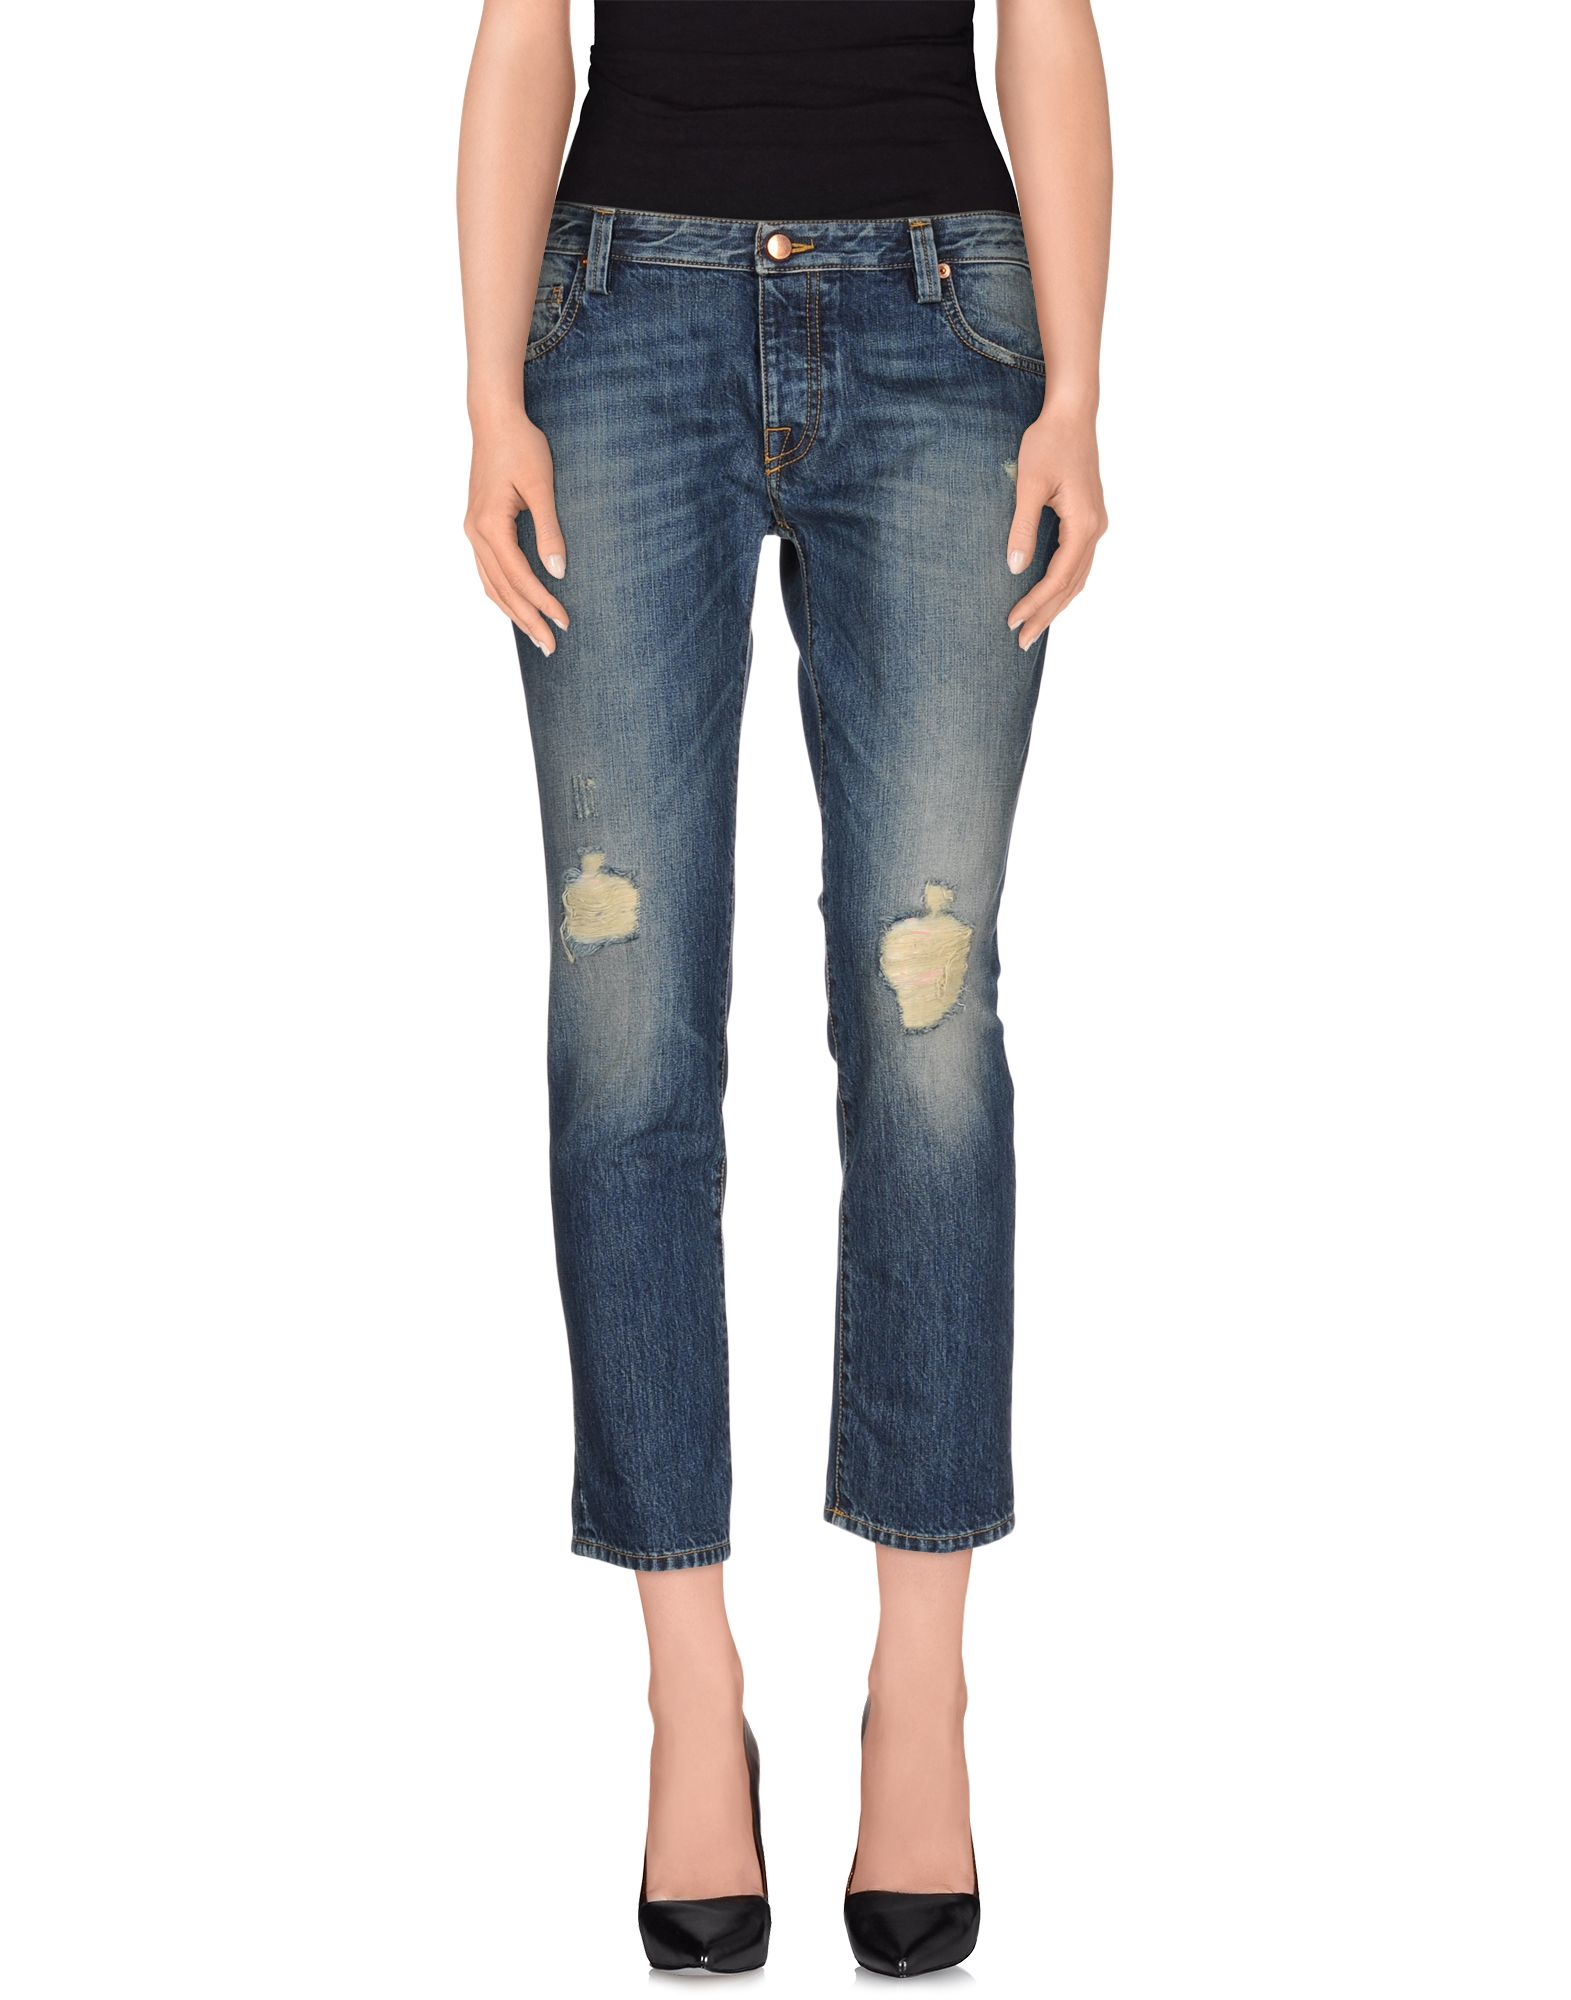 DENIM - Denim trousers Teresa Dainelli